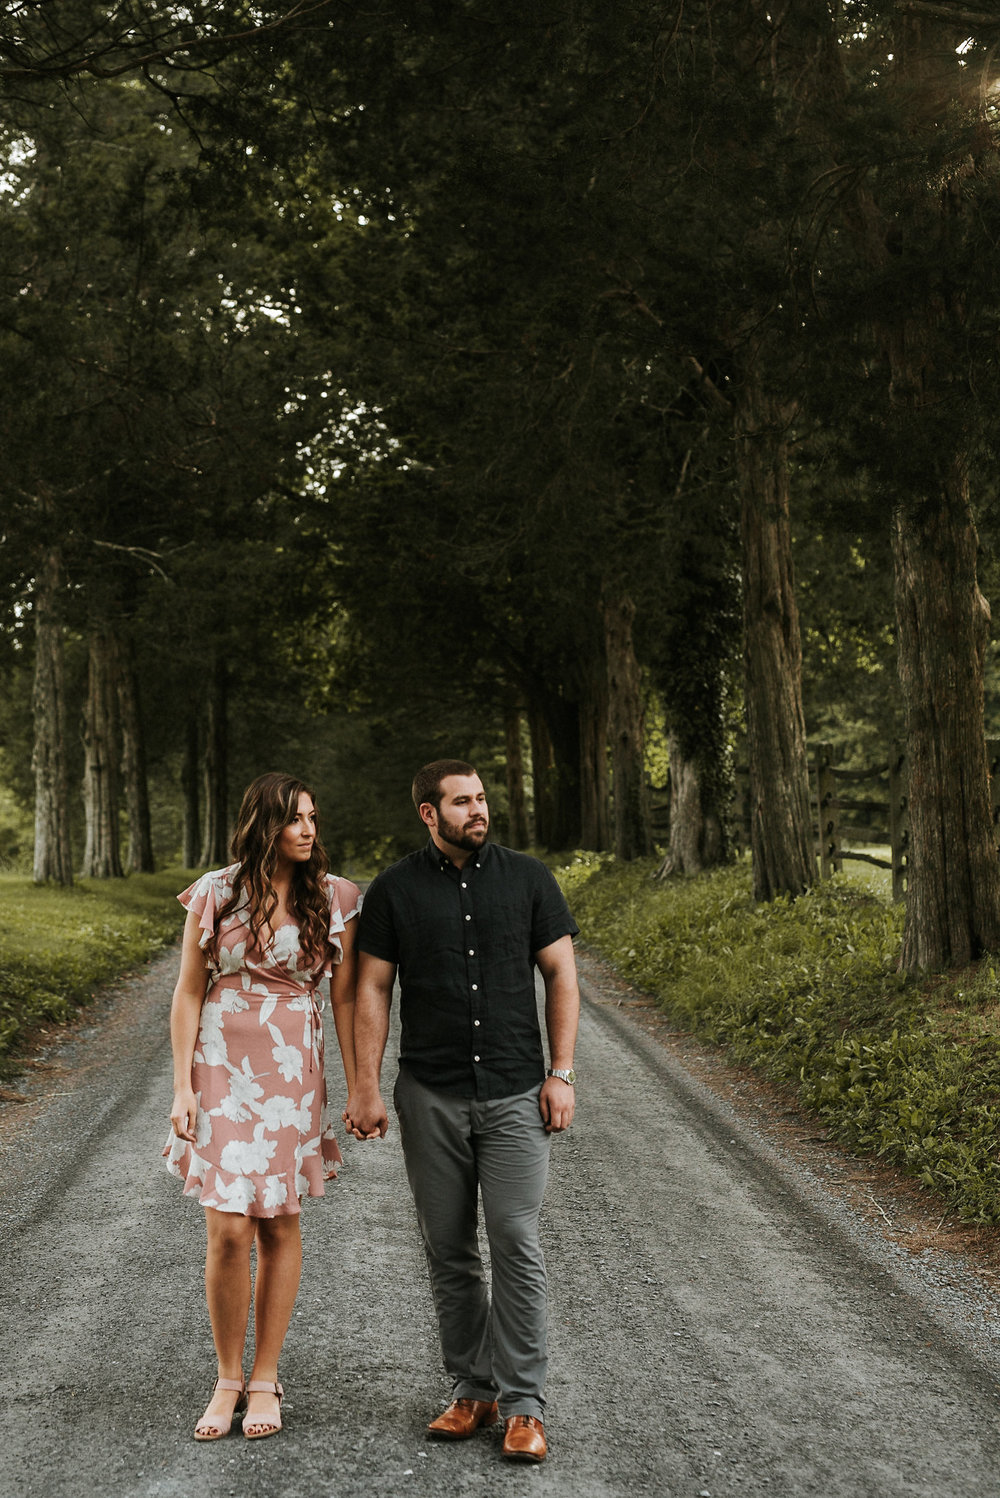 Couple standing in road and looking into distance